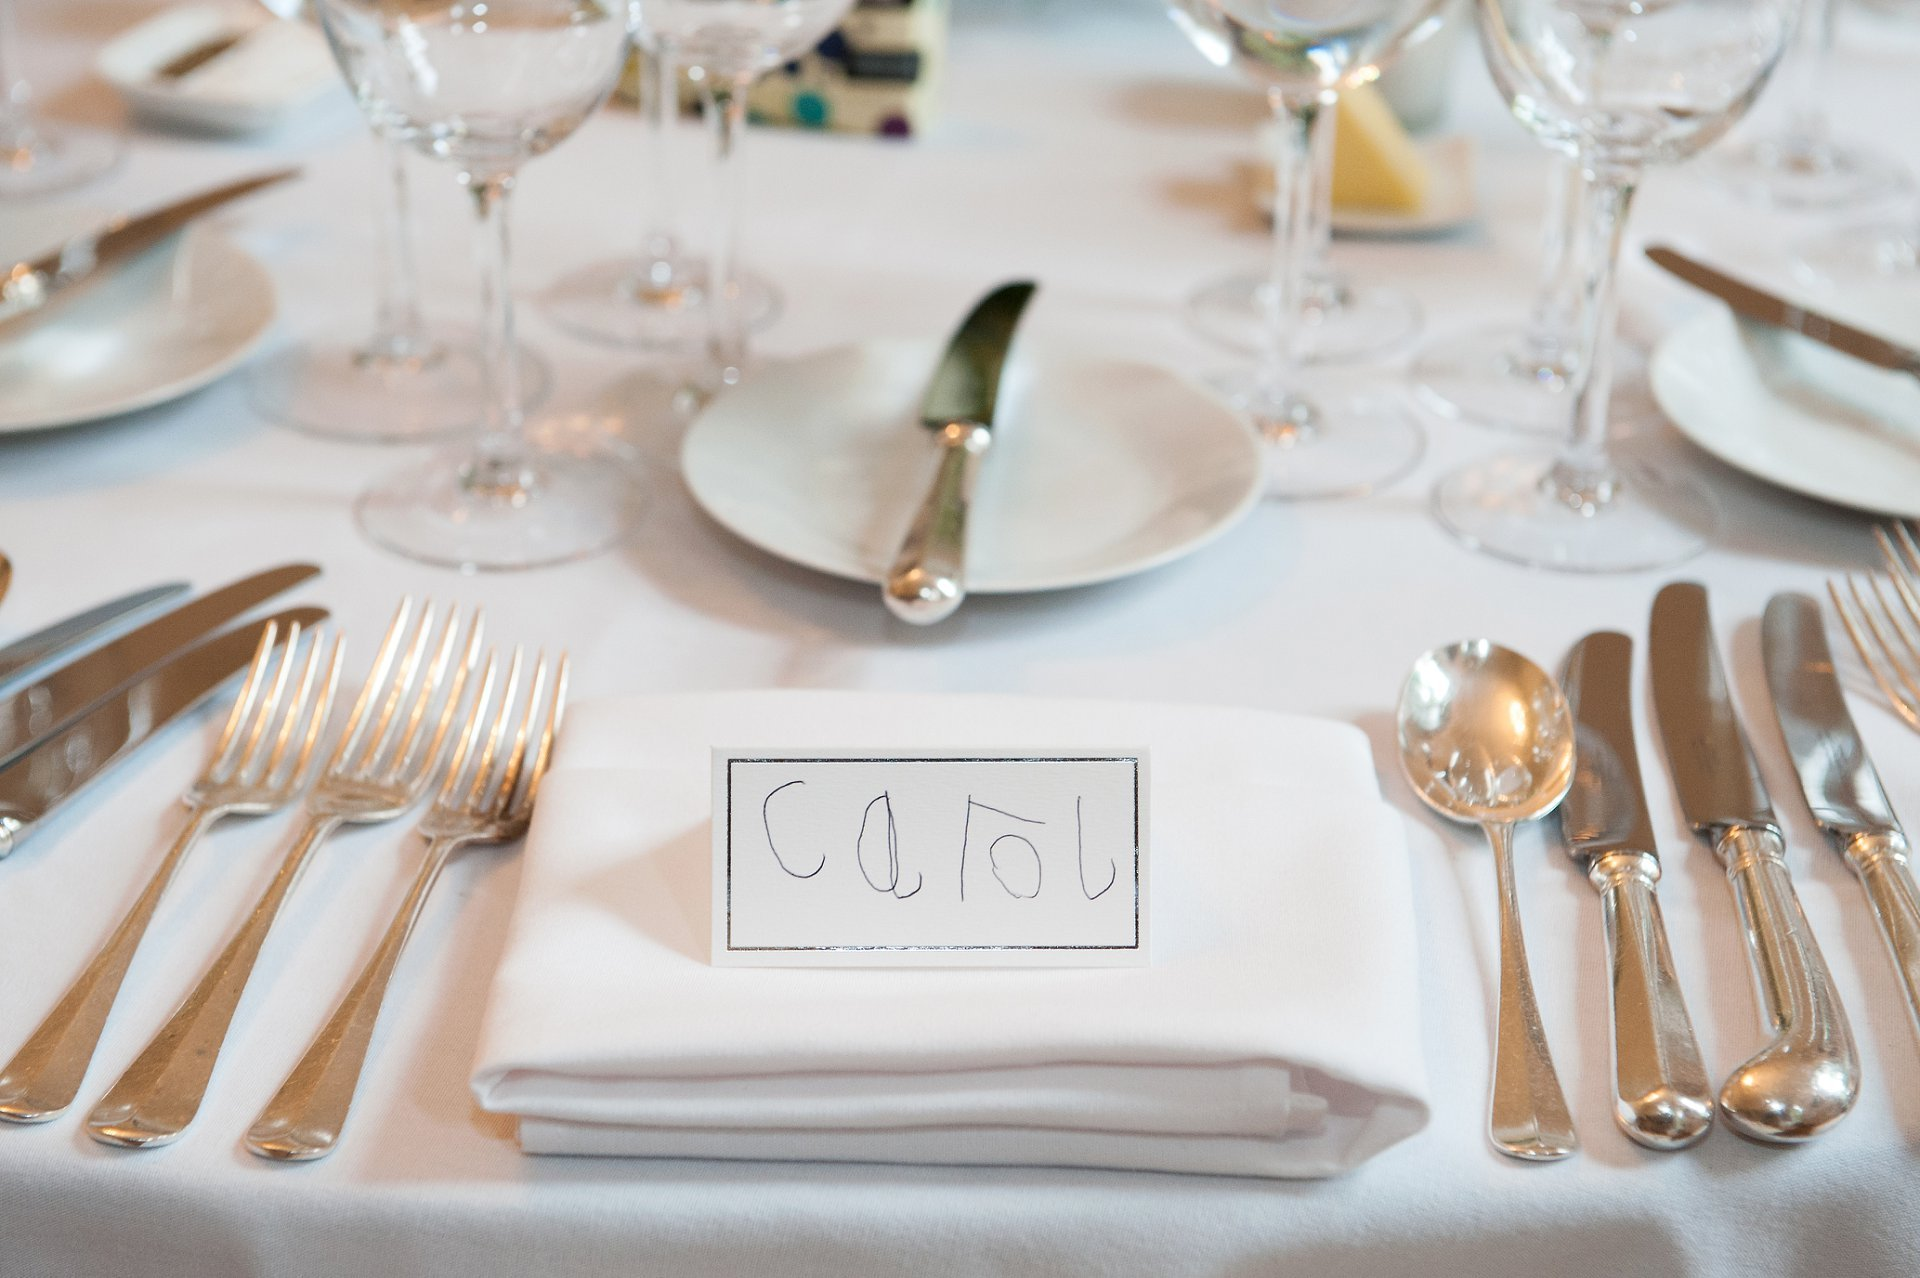 Table names by the bride and groom's daughter - thoroughly original and charming!